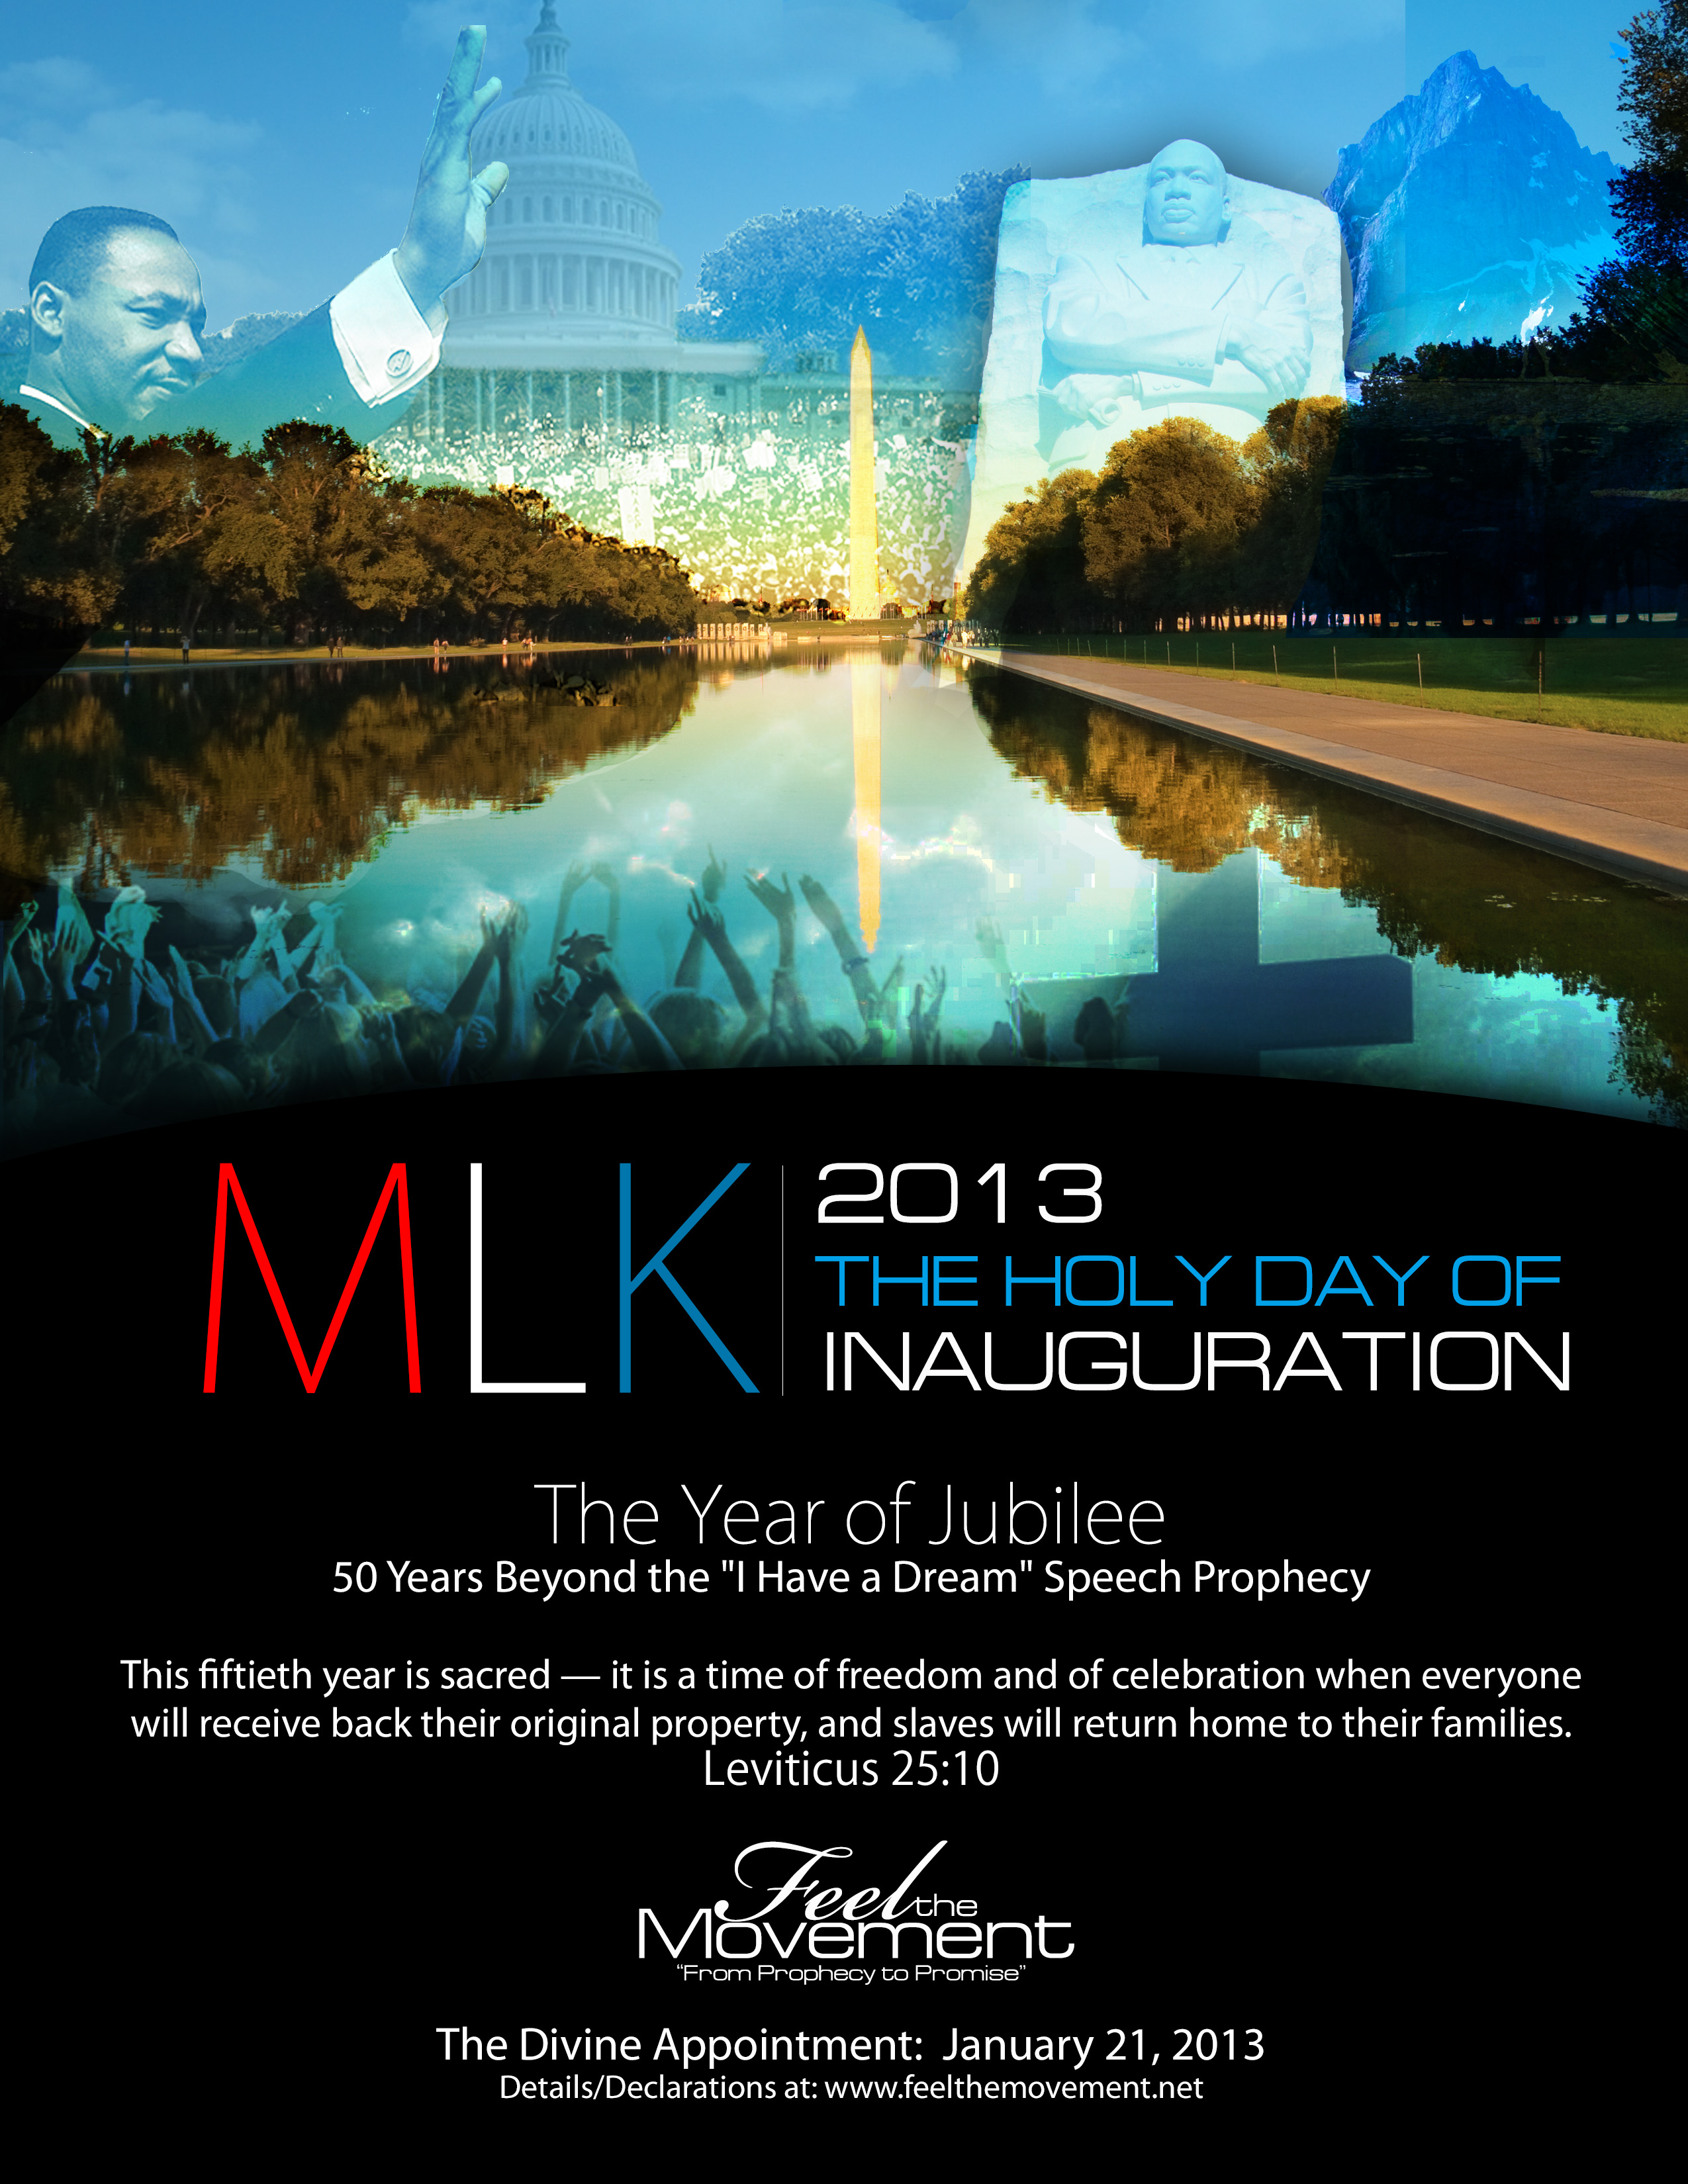 MLK_2013_The Holy Day of Inauguration_January_21